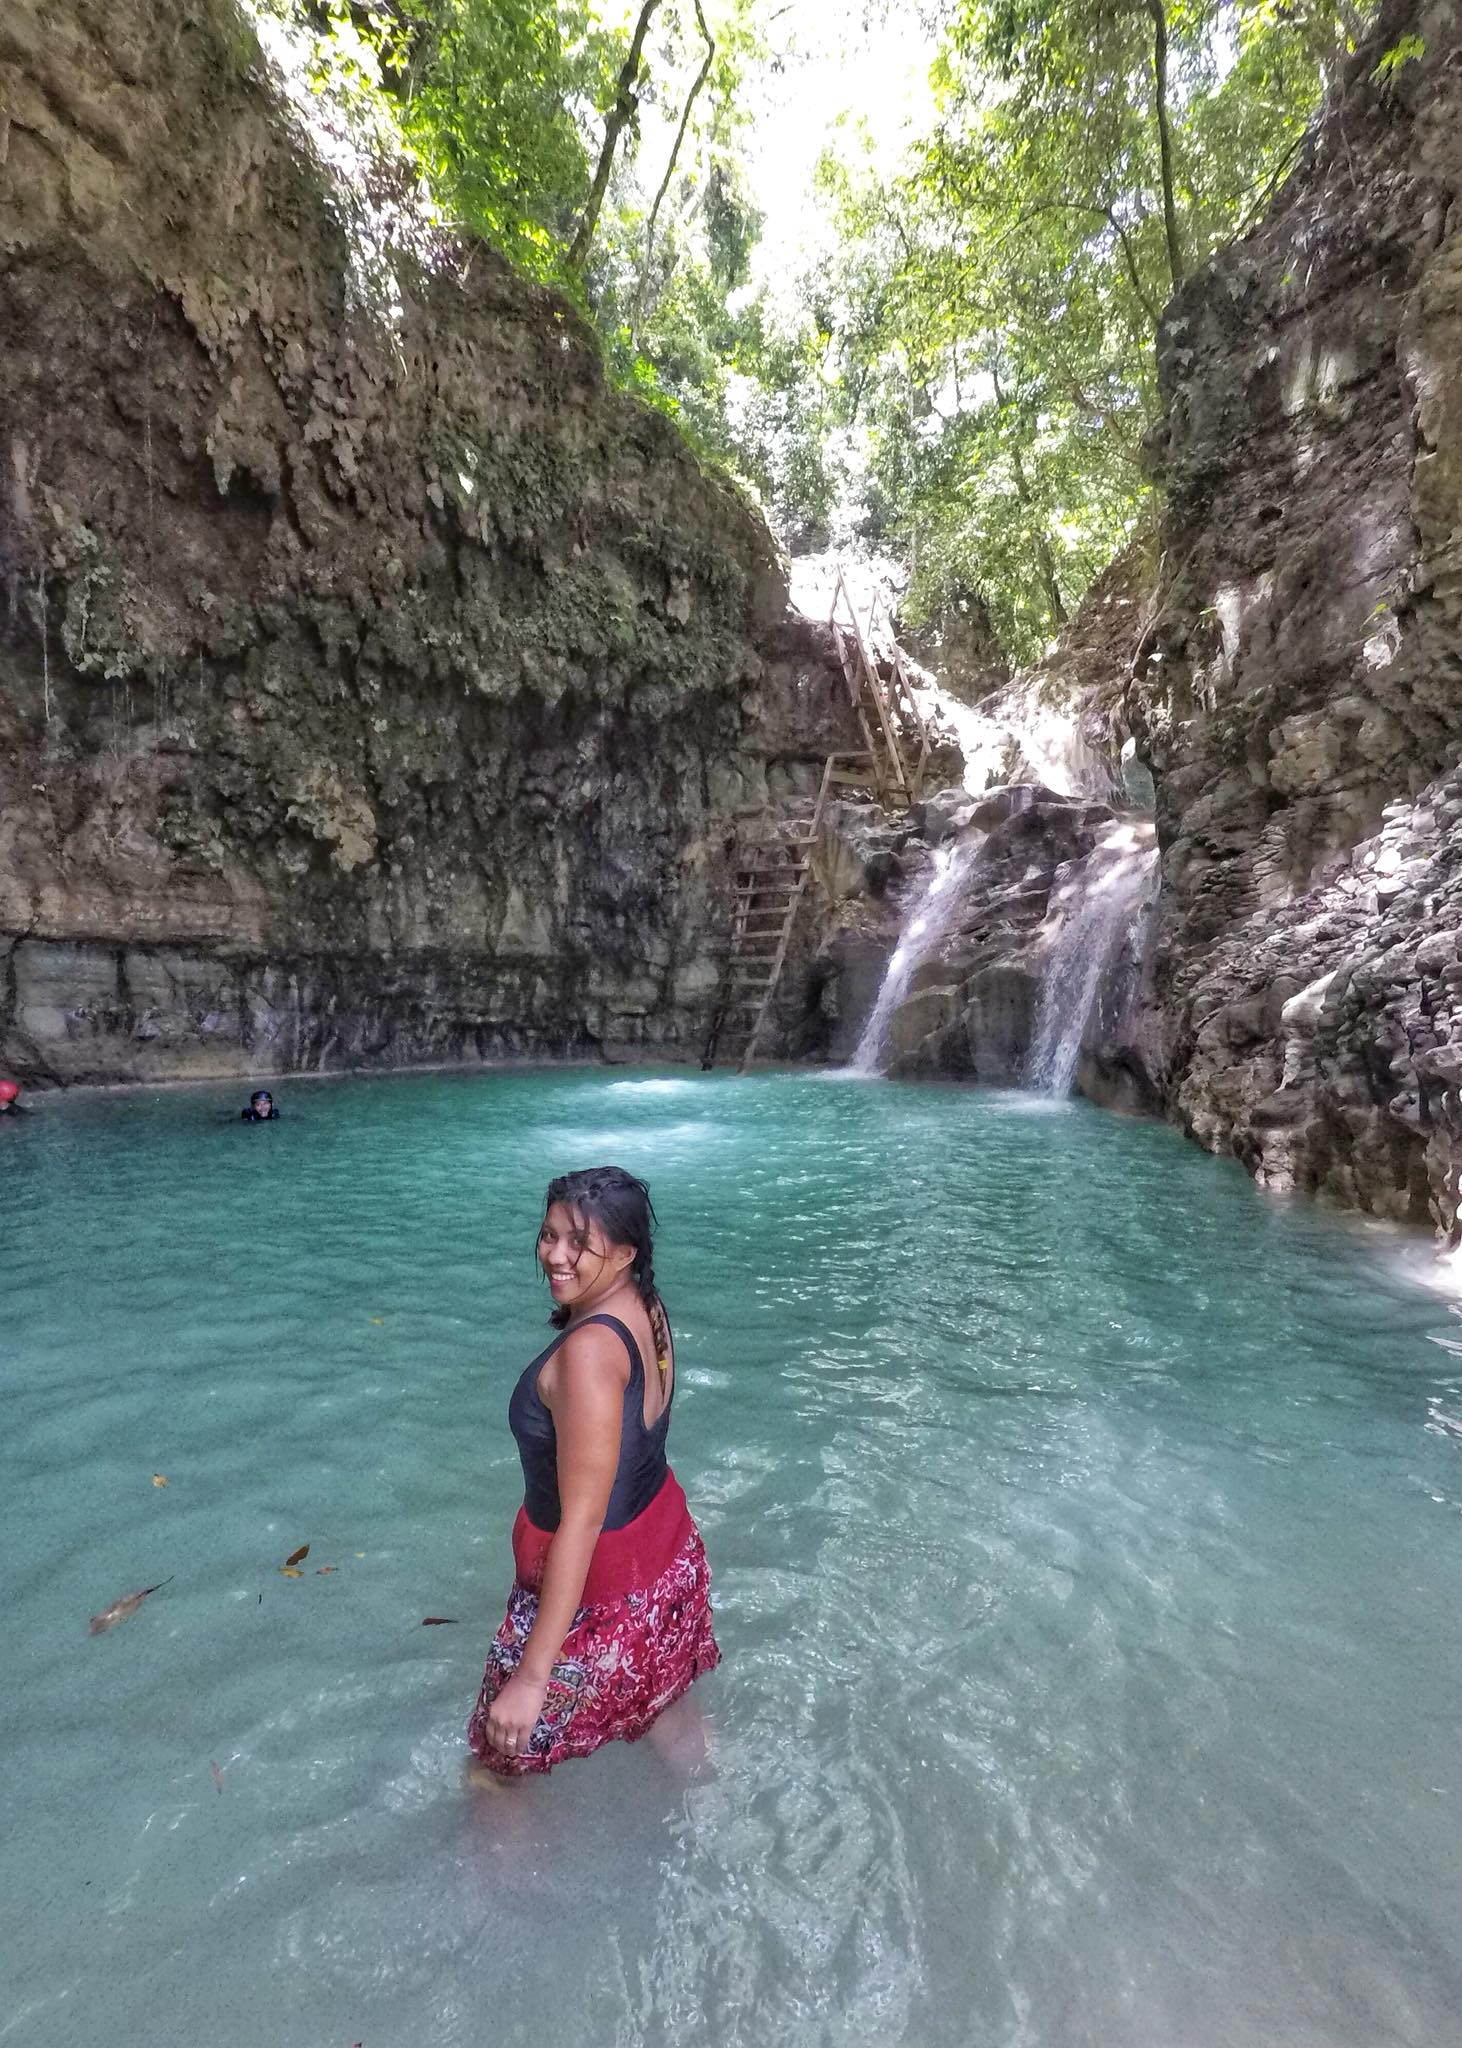 Liveaboard Life Day 112: Motorbike Trip to 27 Waterfalls in Imbert, Puerto Plata